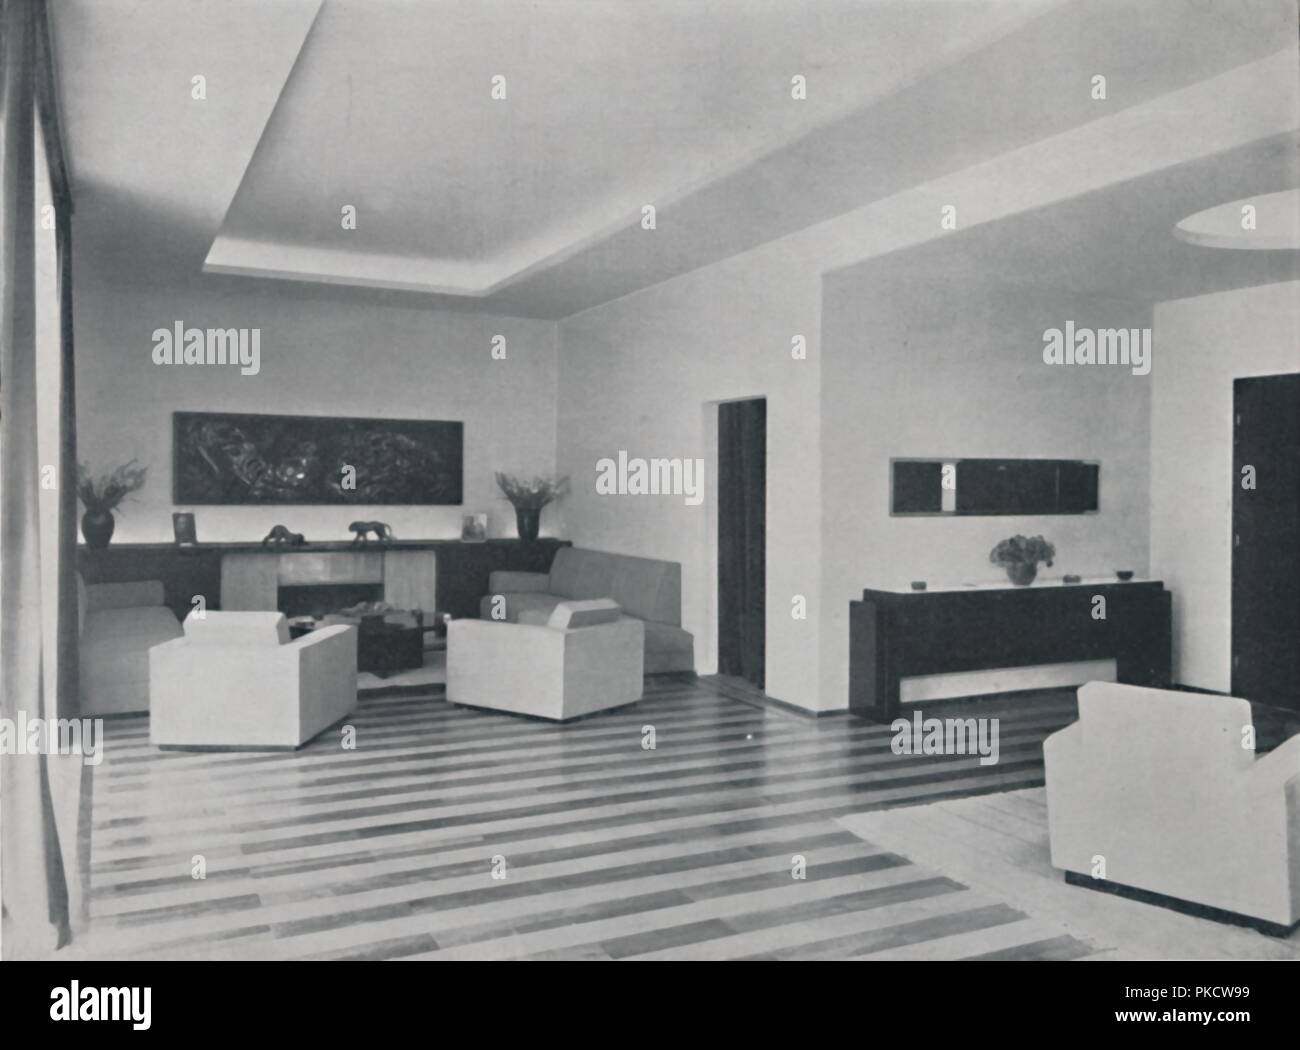 'House in Bucharest by Rudolf Frankel - The sitting room', 1942. The sitting room and dining room form a single large living space divided by curtains. The sitting corner has an open, bronze-hooded fireplace in travertine and black marble with a wood carving above. Fittings and furniture of dark walnut. From Decorative Art 1942 - The Studio Year Book, edited by C. G. Holme. [The Studio Ltd., London, 1942] - Stock Image